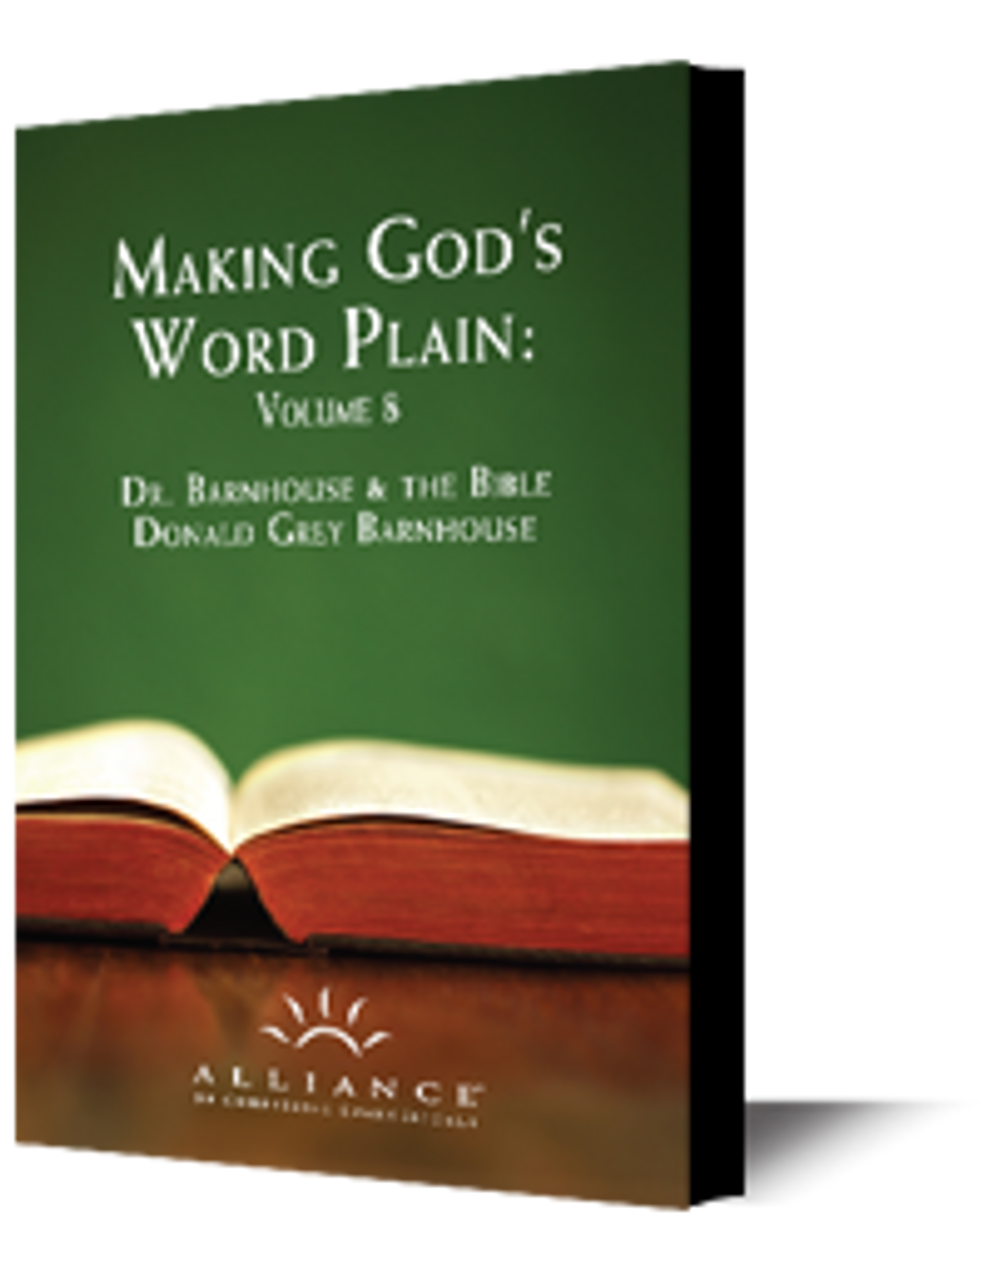 Making God's Word Plain, Volume 8 (CD Set)